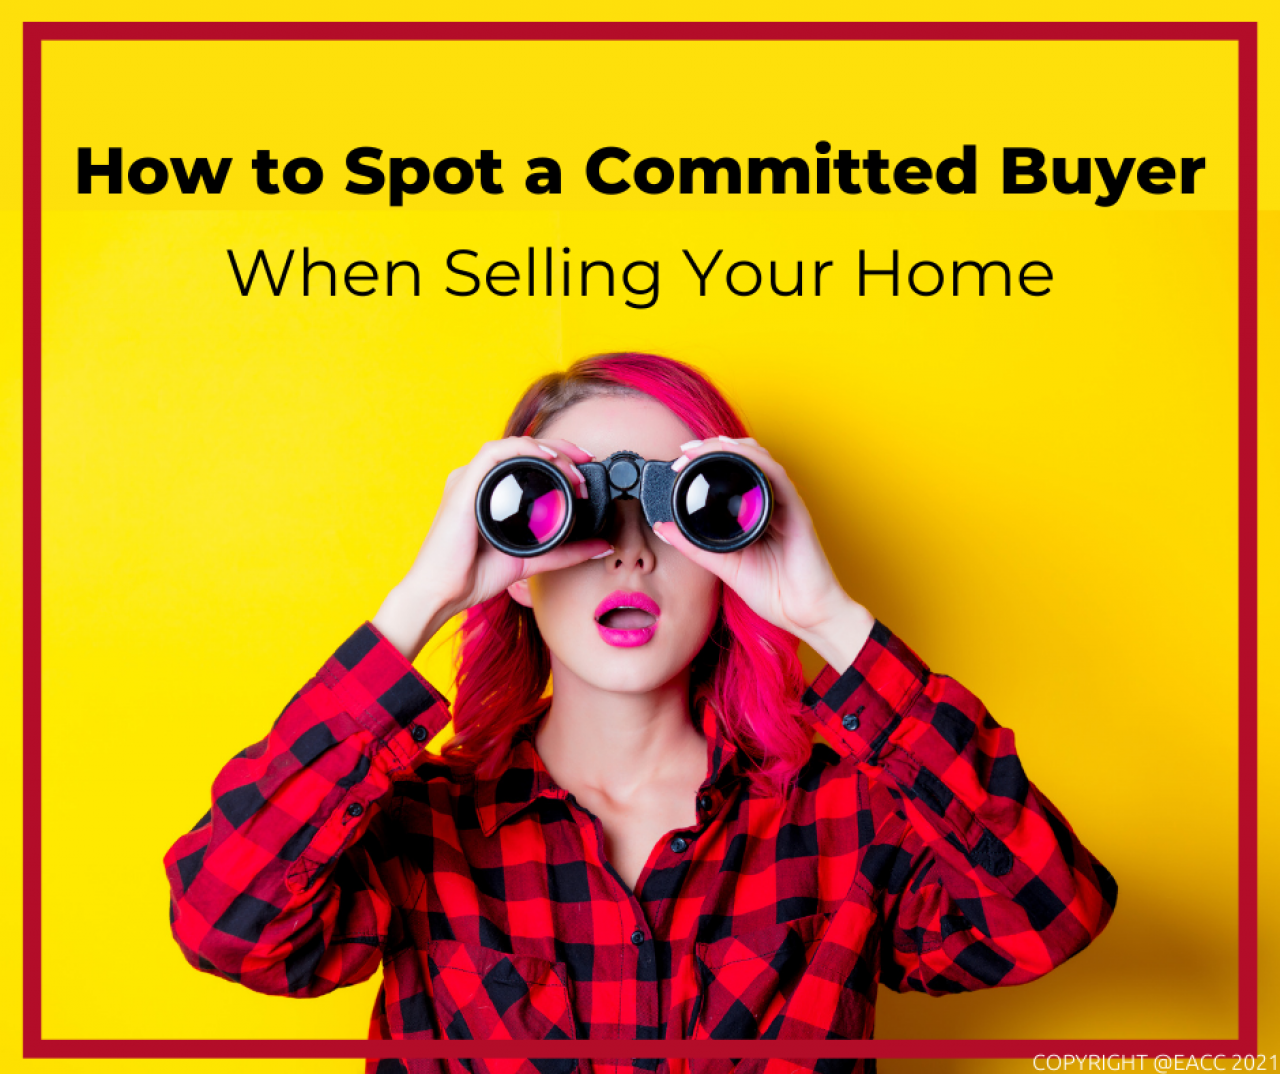 >How to Avoid Time Wasters When Selling Your Sidcup